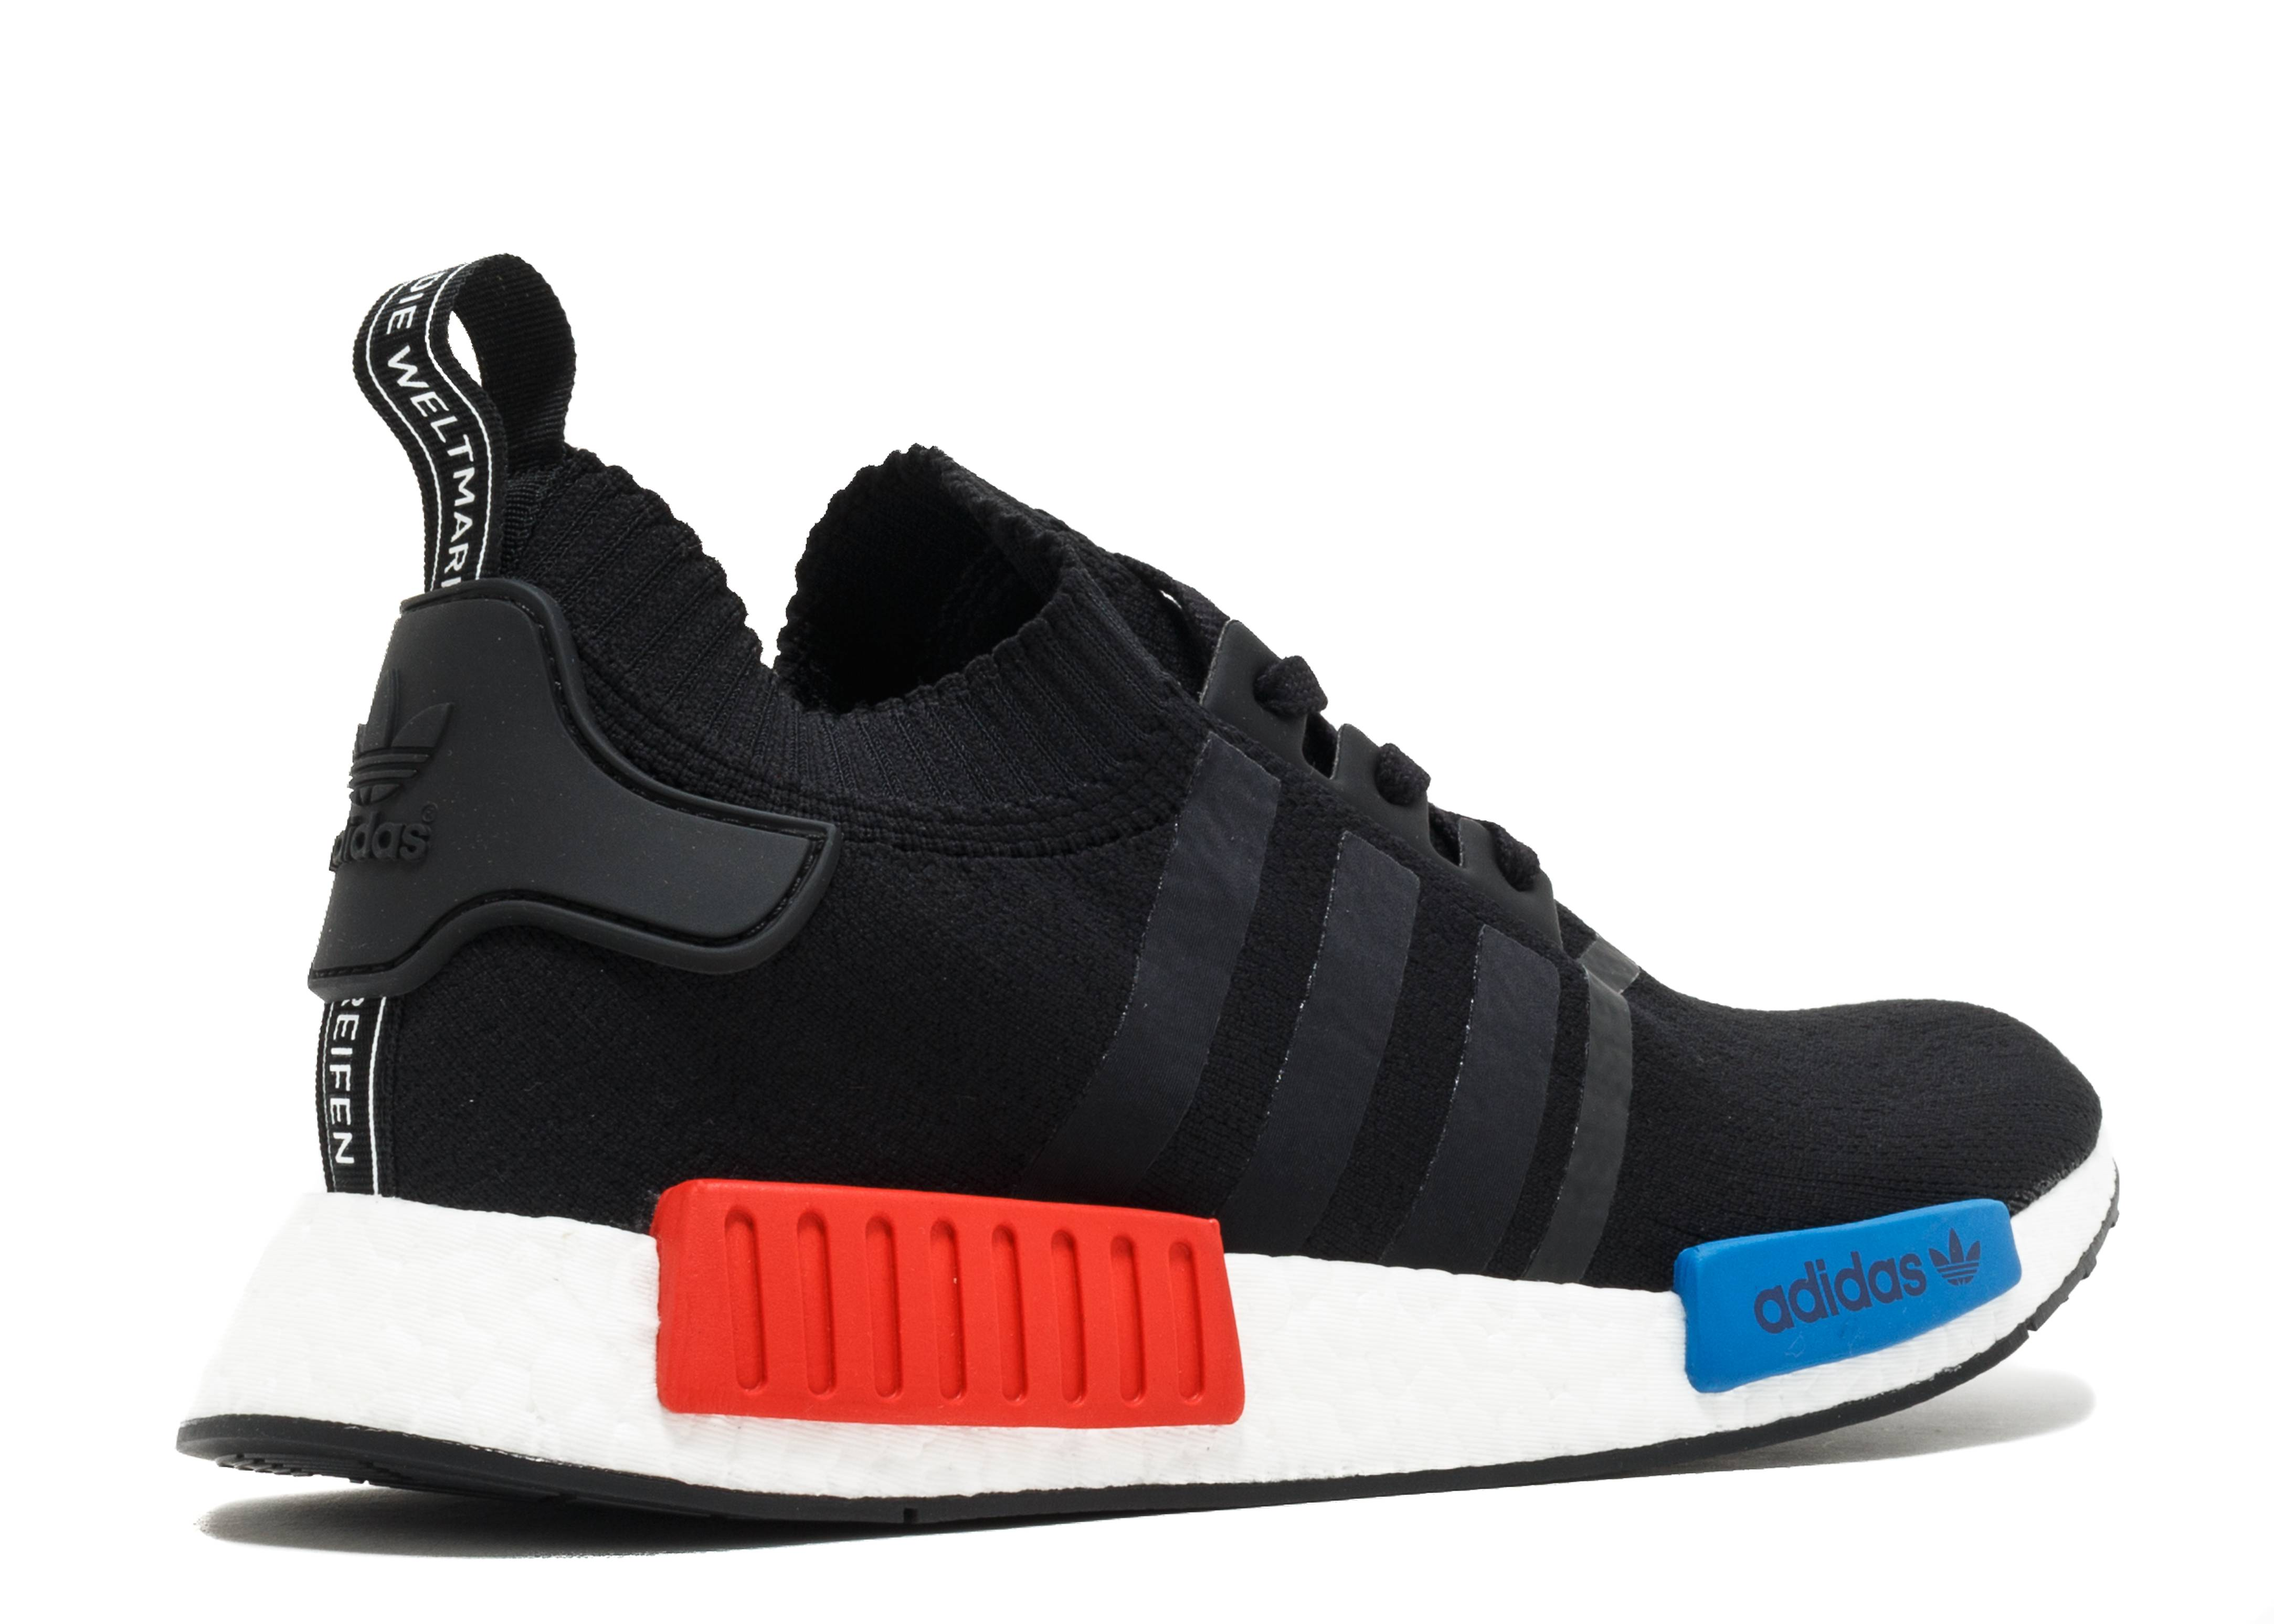 new product 883f0 97371 Nmd R1 Pk